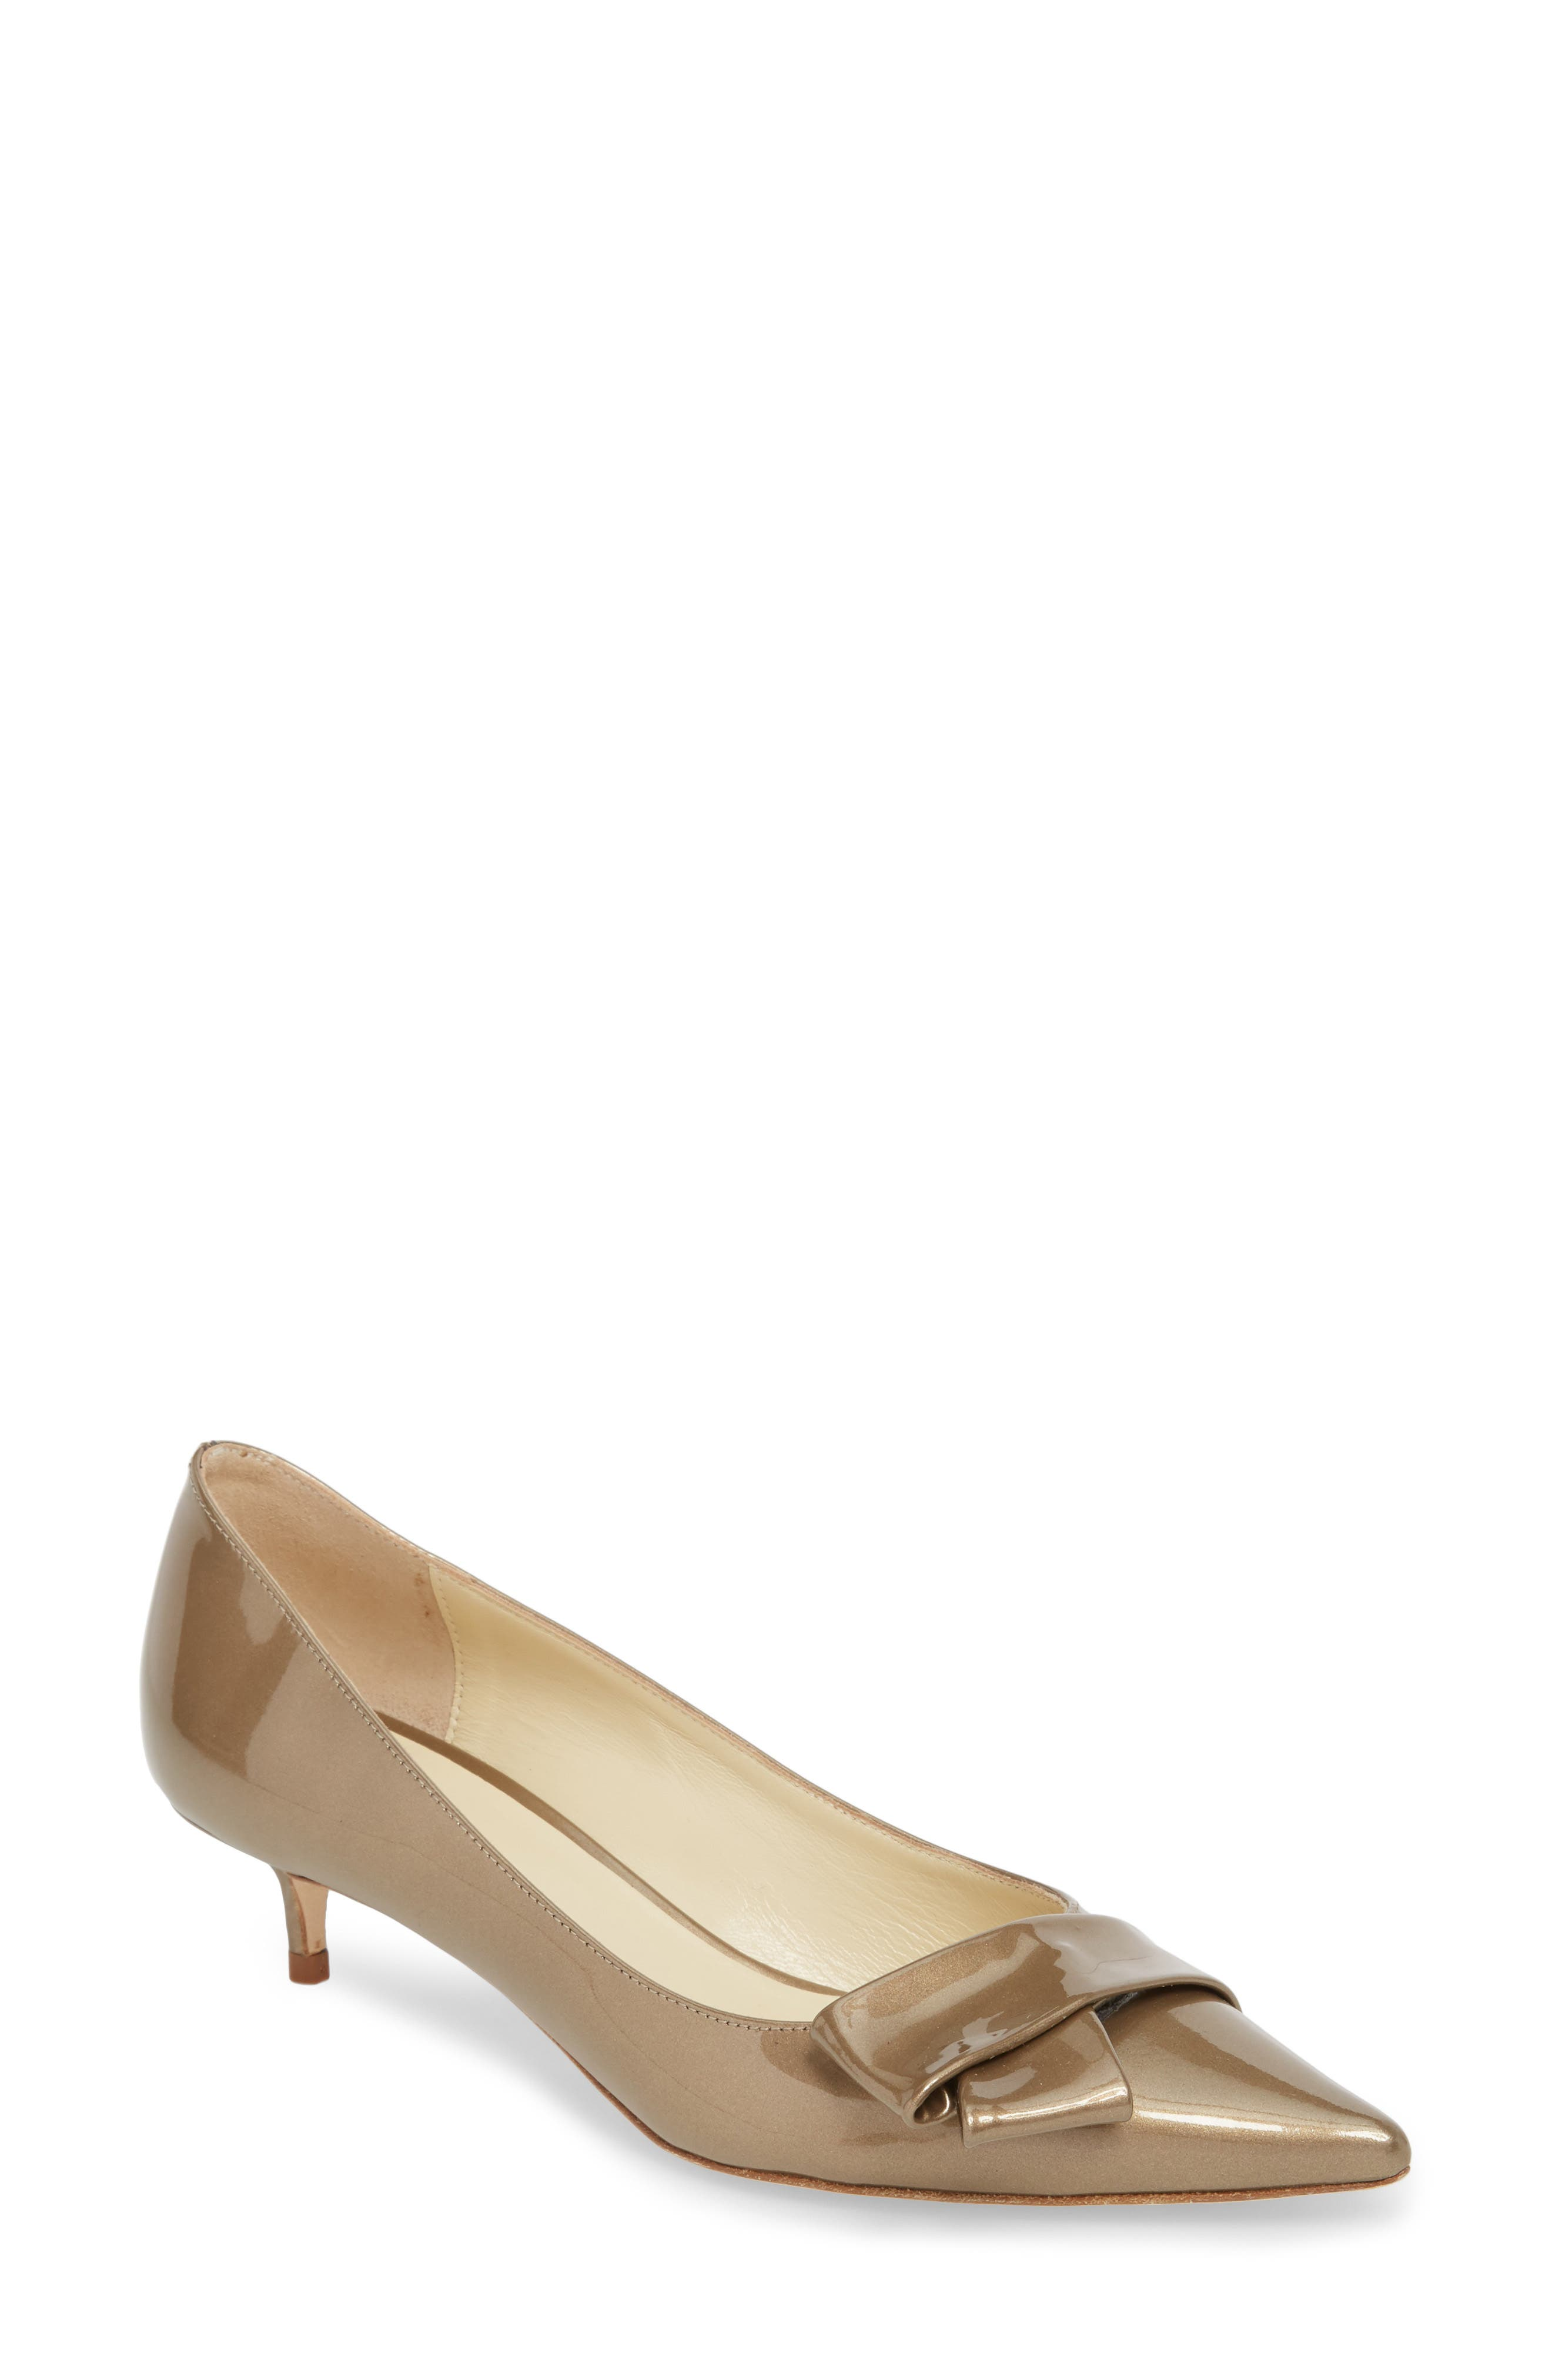 Butter Bliss Pointy Toe Pump,                             Main thumbnail 2, color,